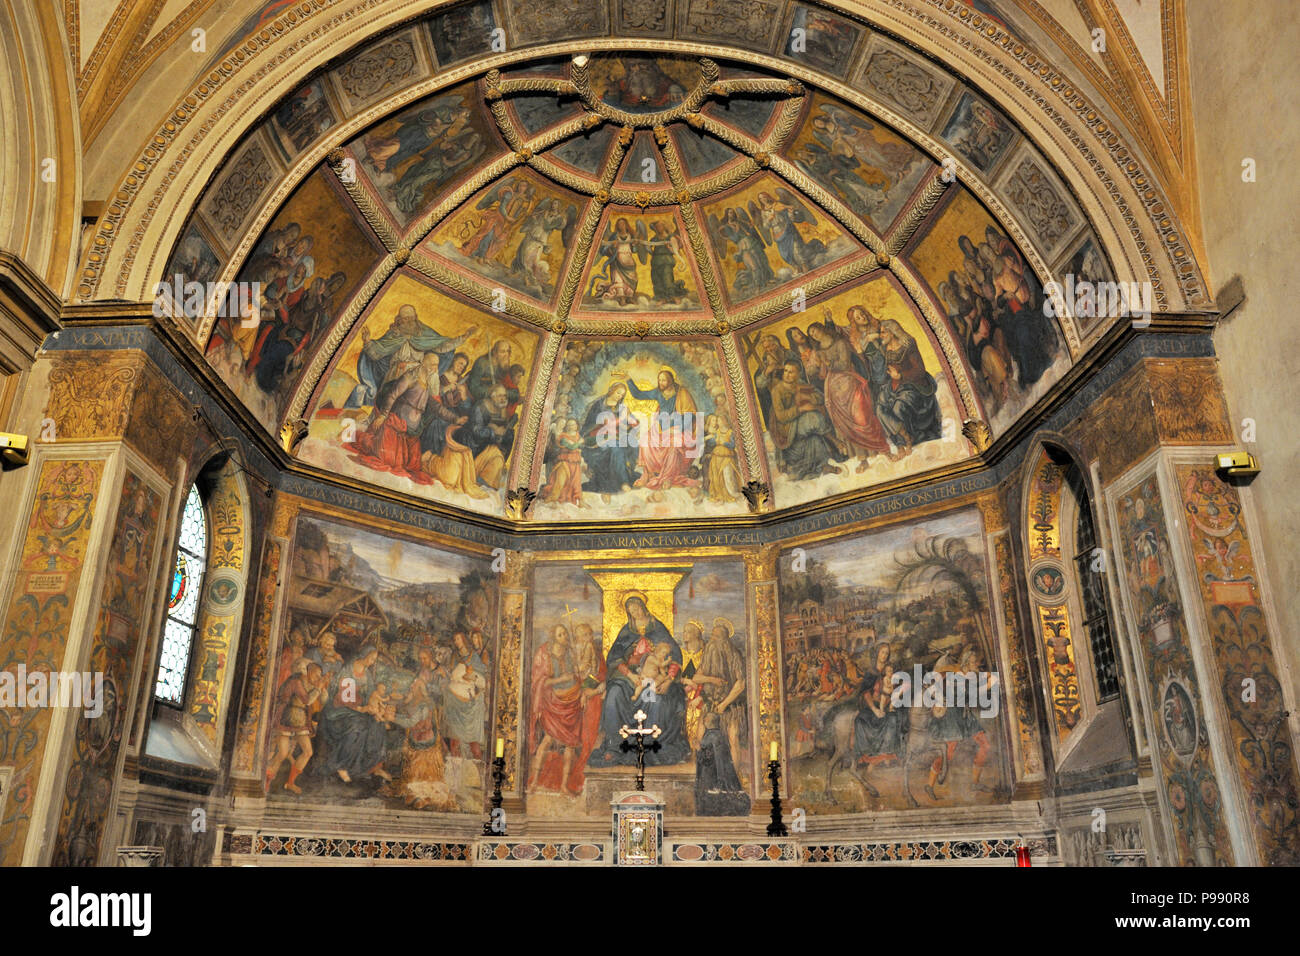 italy, rome, church of sant'onofrio al gianicolo, apse frescos of the Stories of Mary attributed to Baldassare Peruzzi Stock Photo